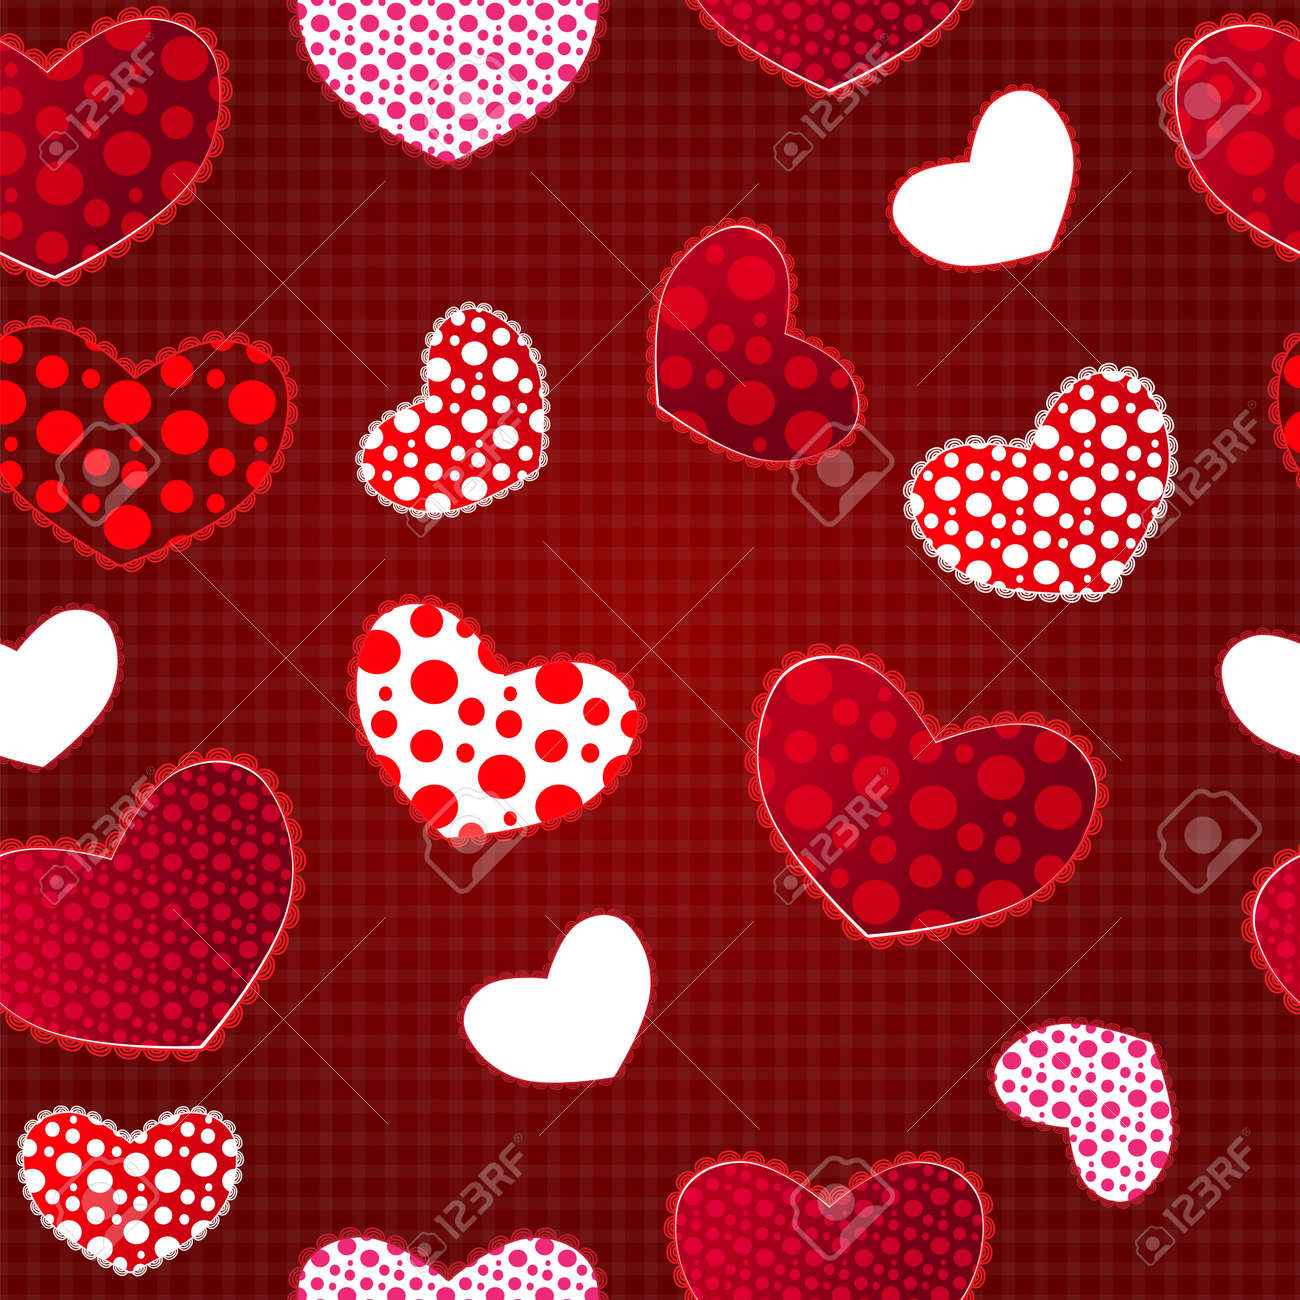 Red Love Valentin's Day Seamless Pattern on Craft Paper. Illustration for your design Stock Vector - 17294056